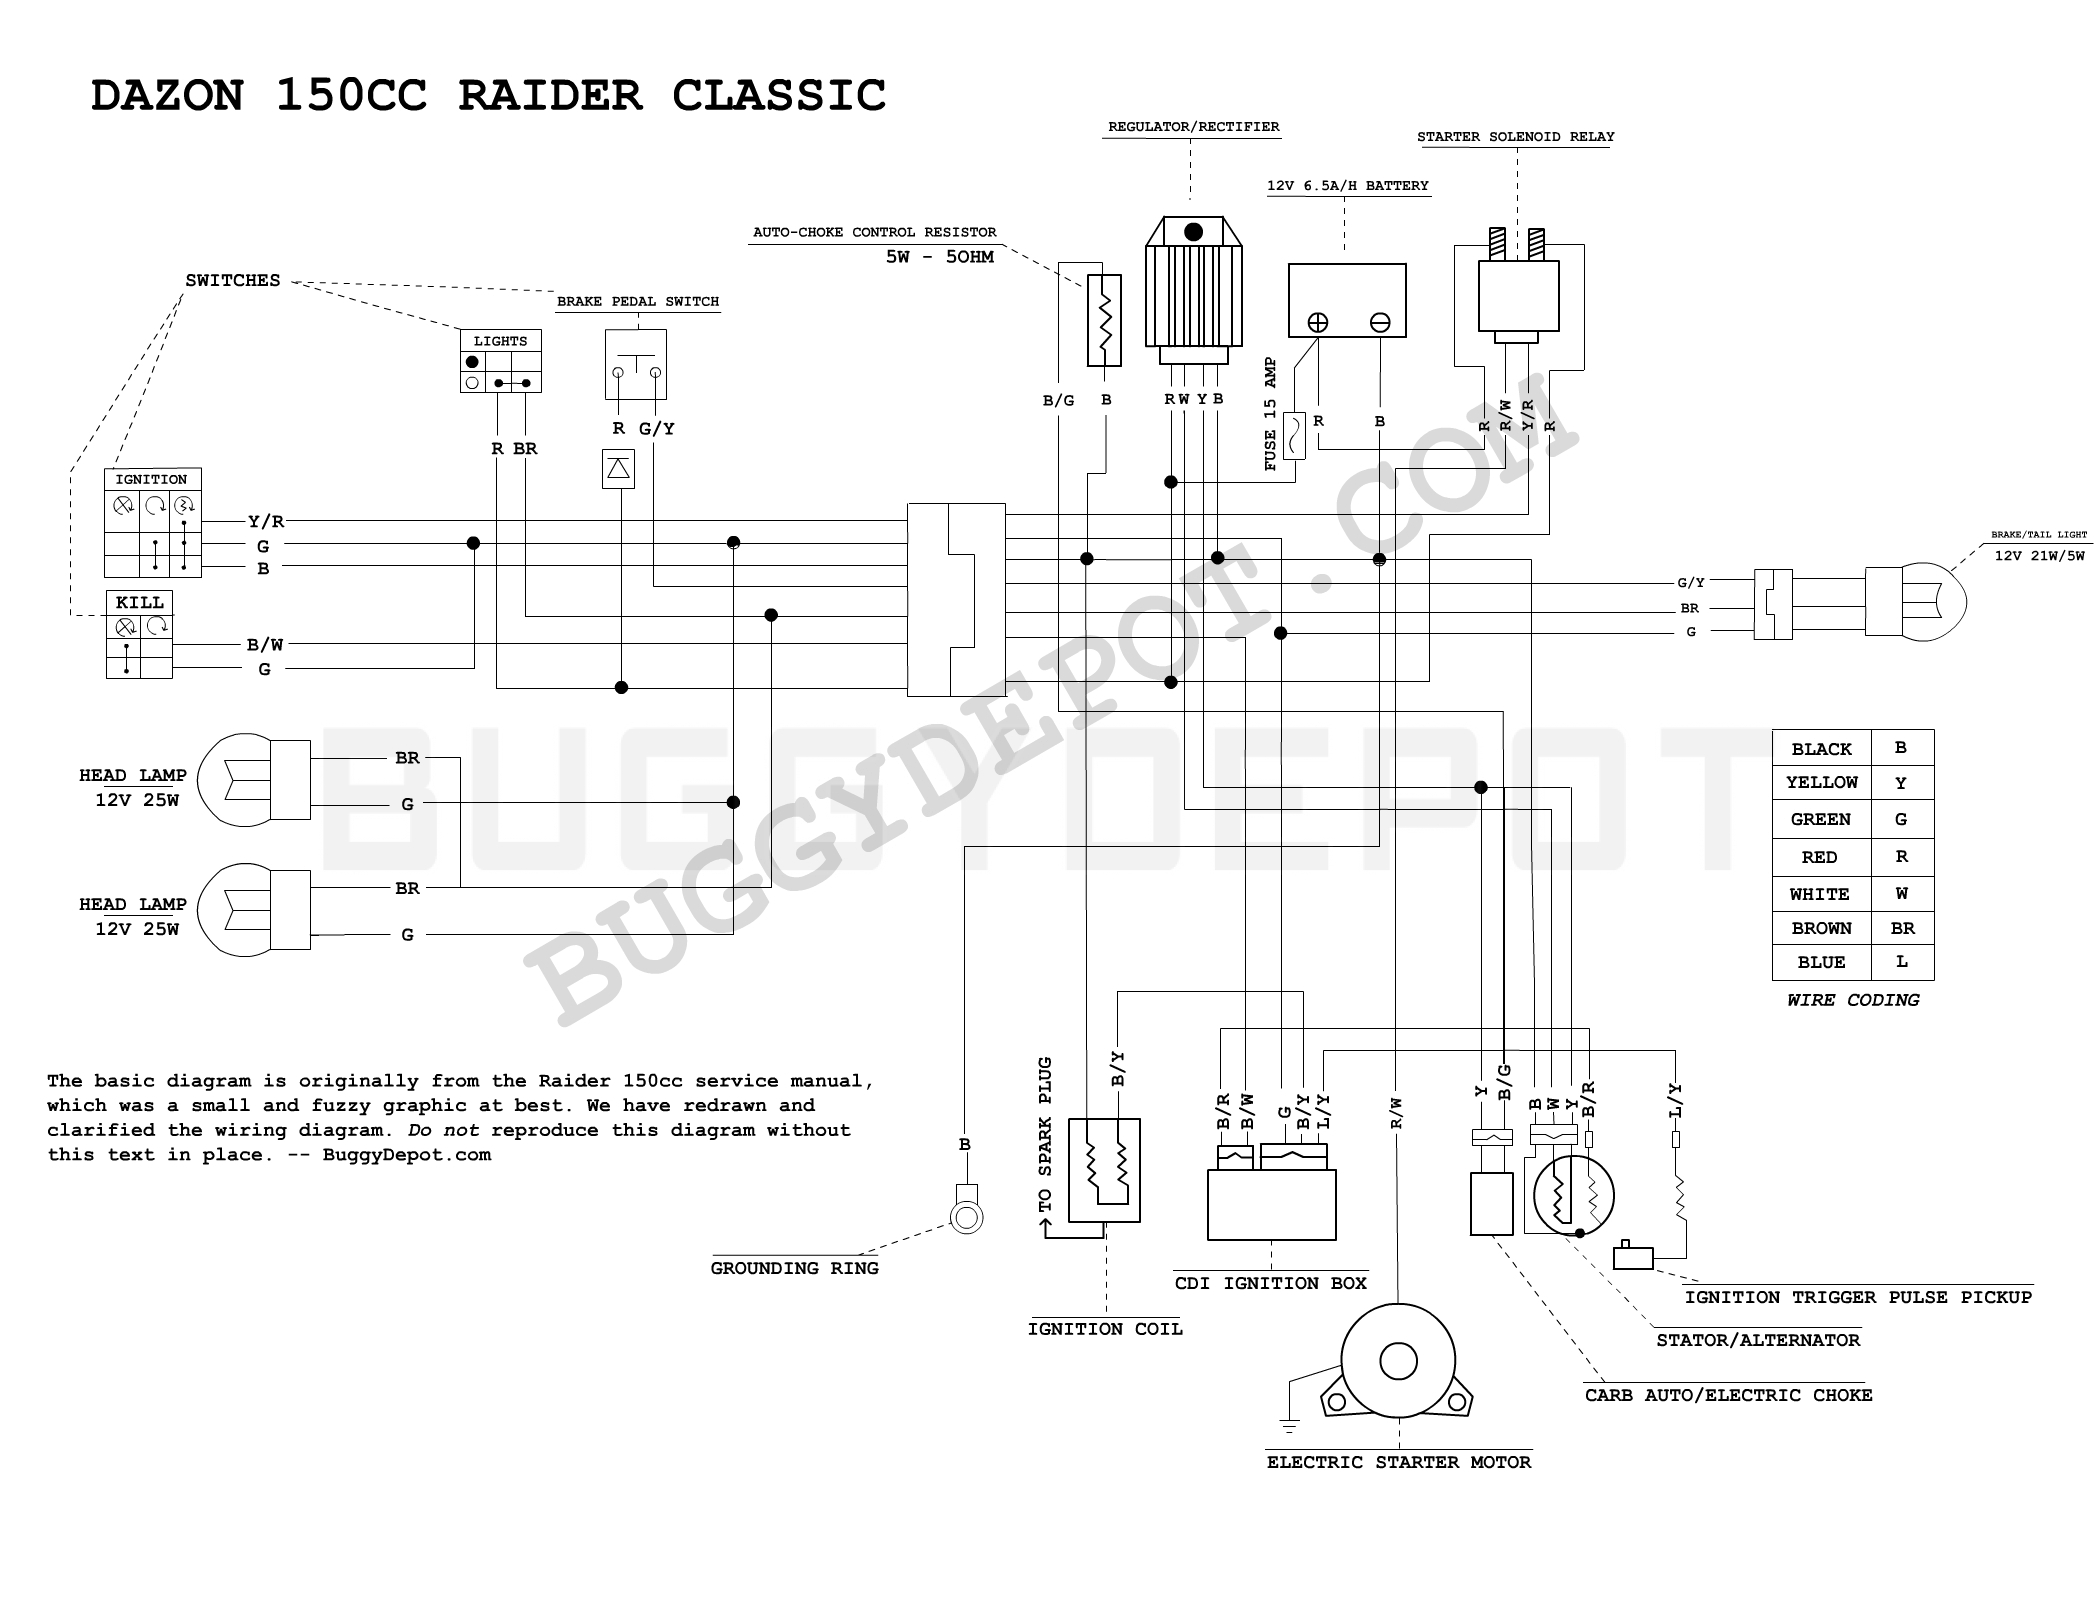 article_33_1278205207 crossfire 150r wiring diagram buggy depot technical center baja motorsports dune 150 wiring diagram at bayanpartner.co